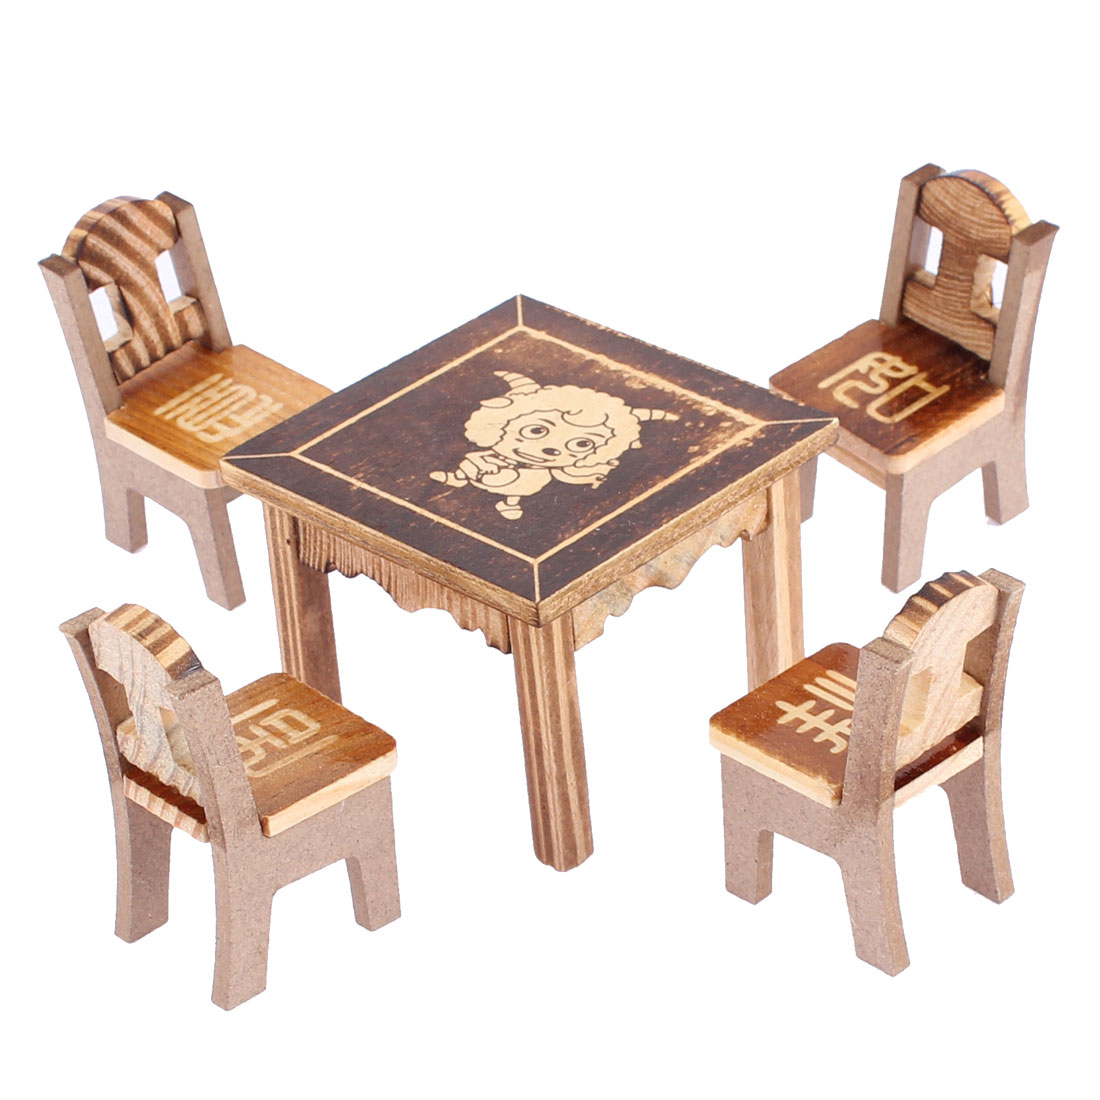 Home Office Wooden Desktop Decoration Cartoon Sheep Printed Craft Table Chair Set